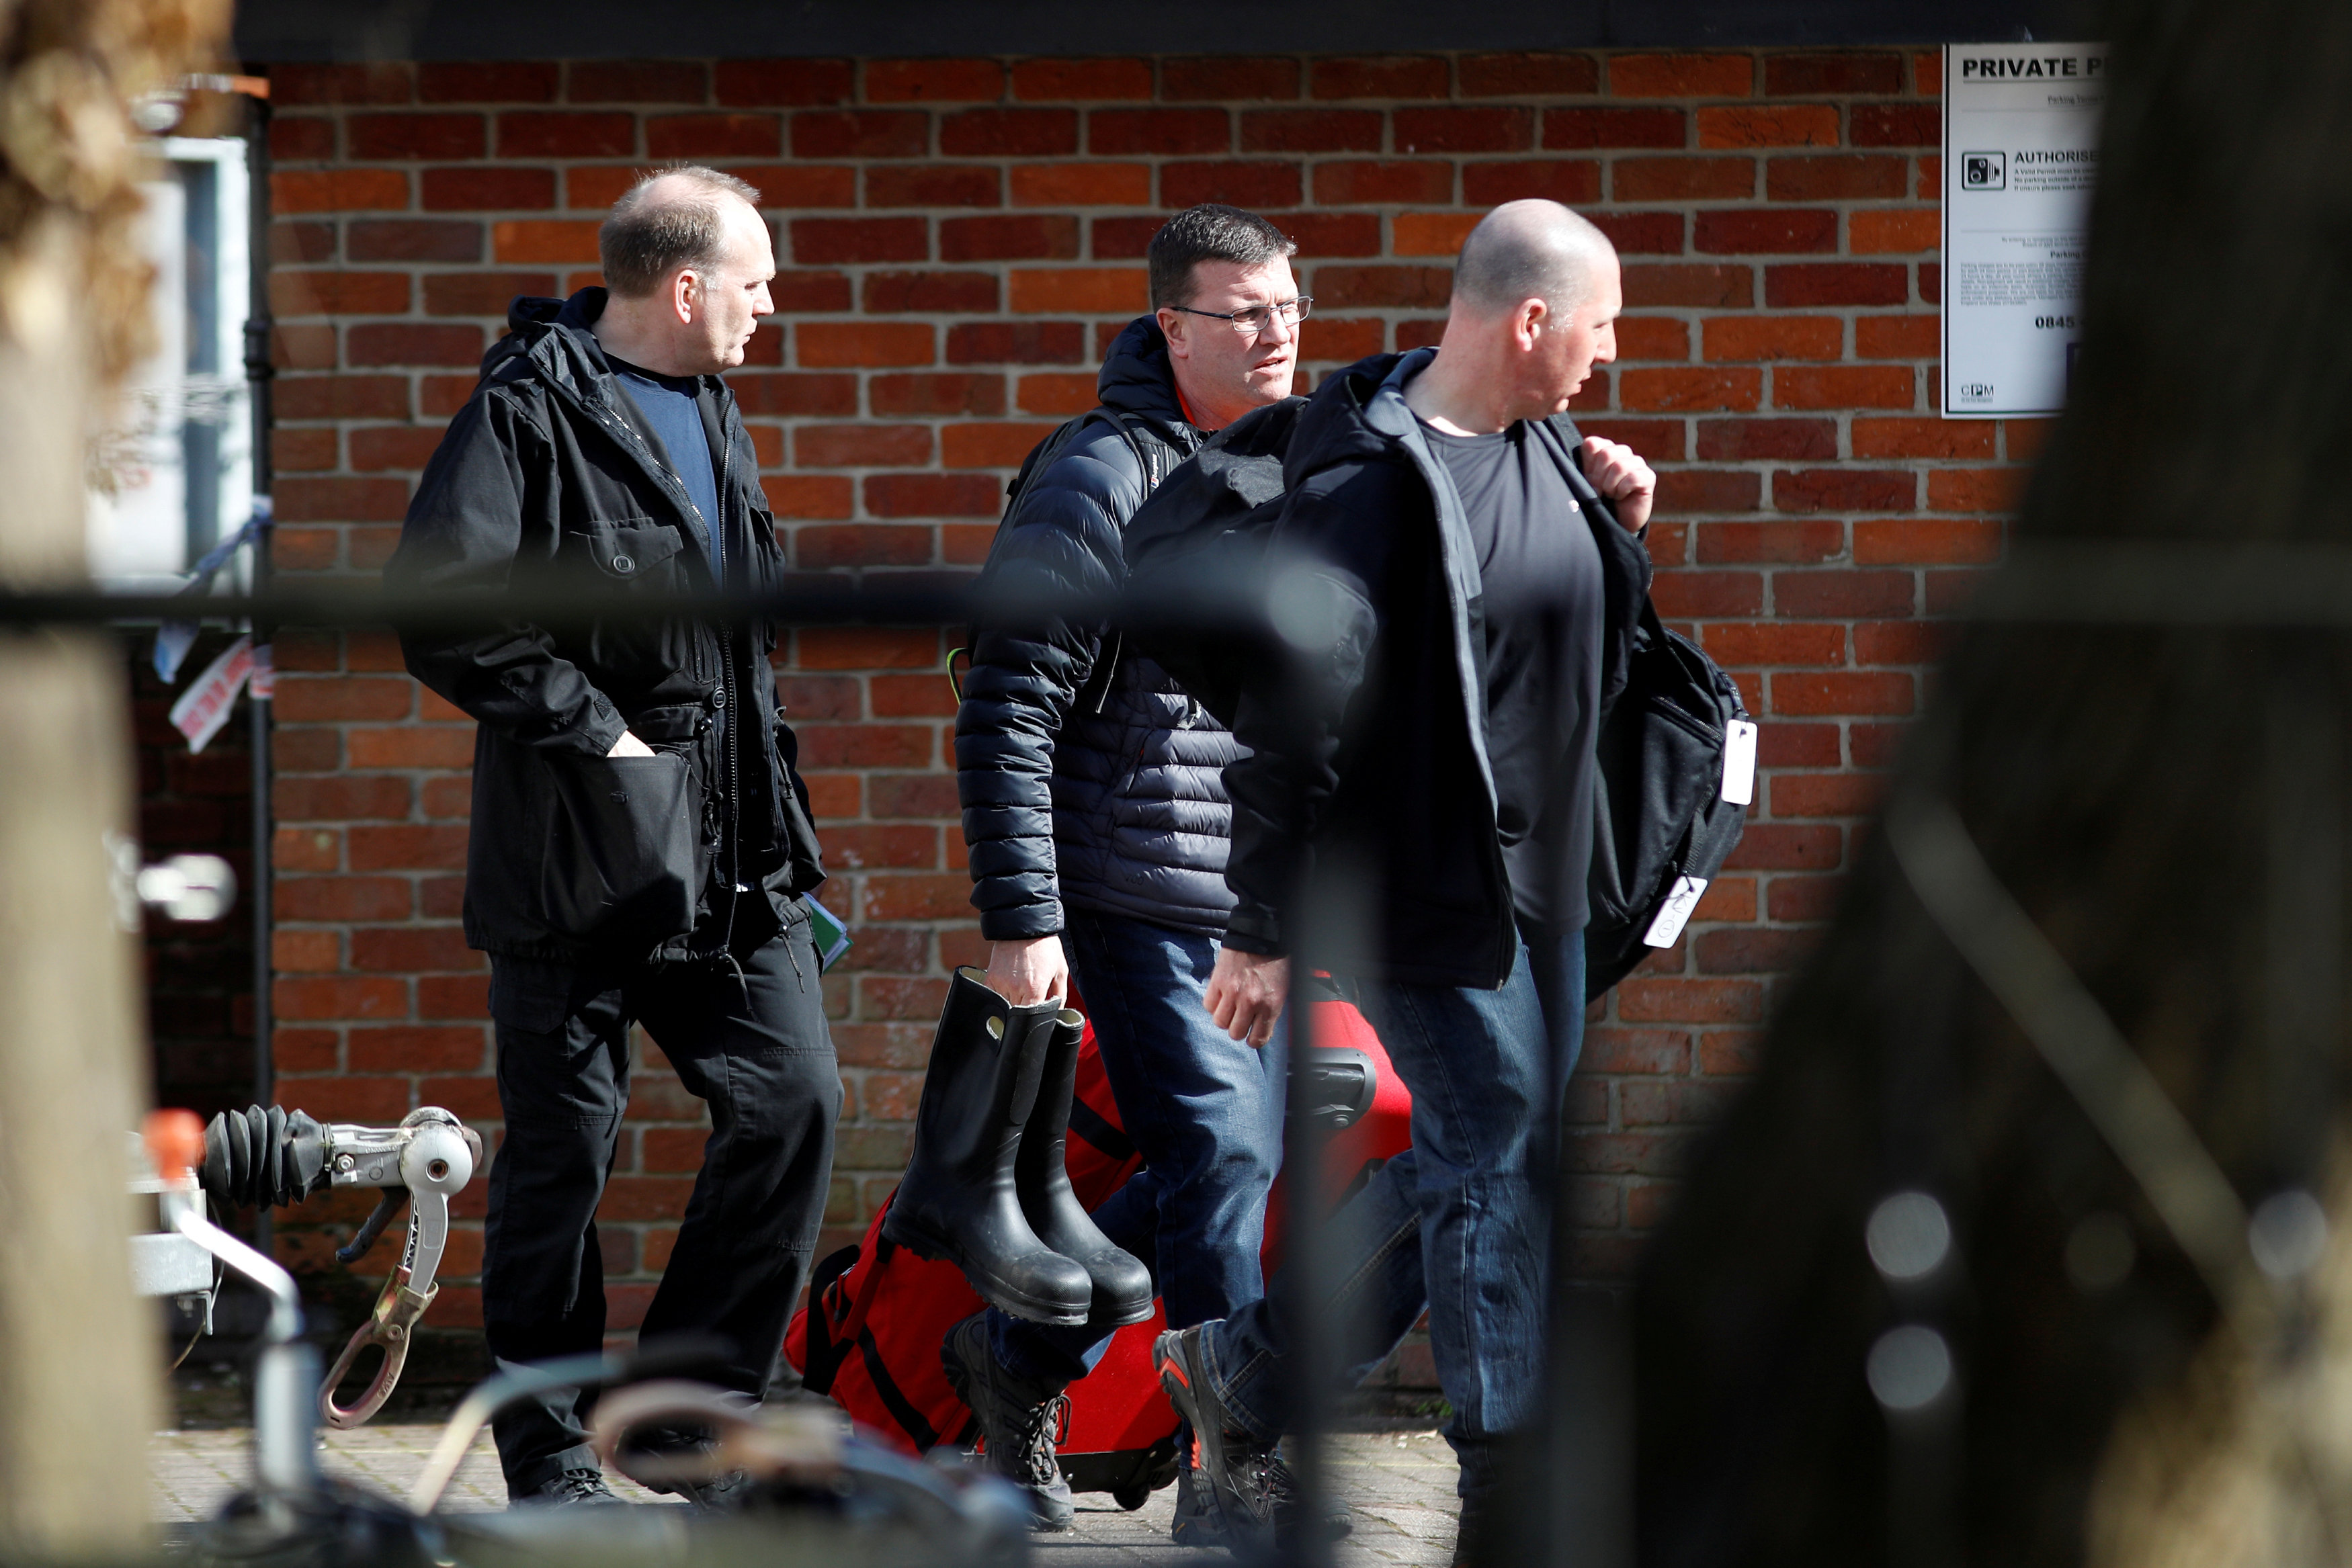 FILE PHOTO: Inspectors from the Organisation for the Prohibition of Chemical Weapons (OPCW) arrive to begin work at the scene of the nerve agent attack on former Russian spy Sergei Skripal, in Salisbury, Britain, March 21, 2018. REUTERS/Peter Nicholls/File Photo